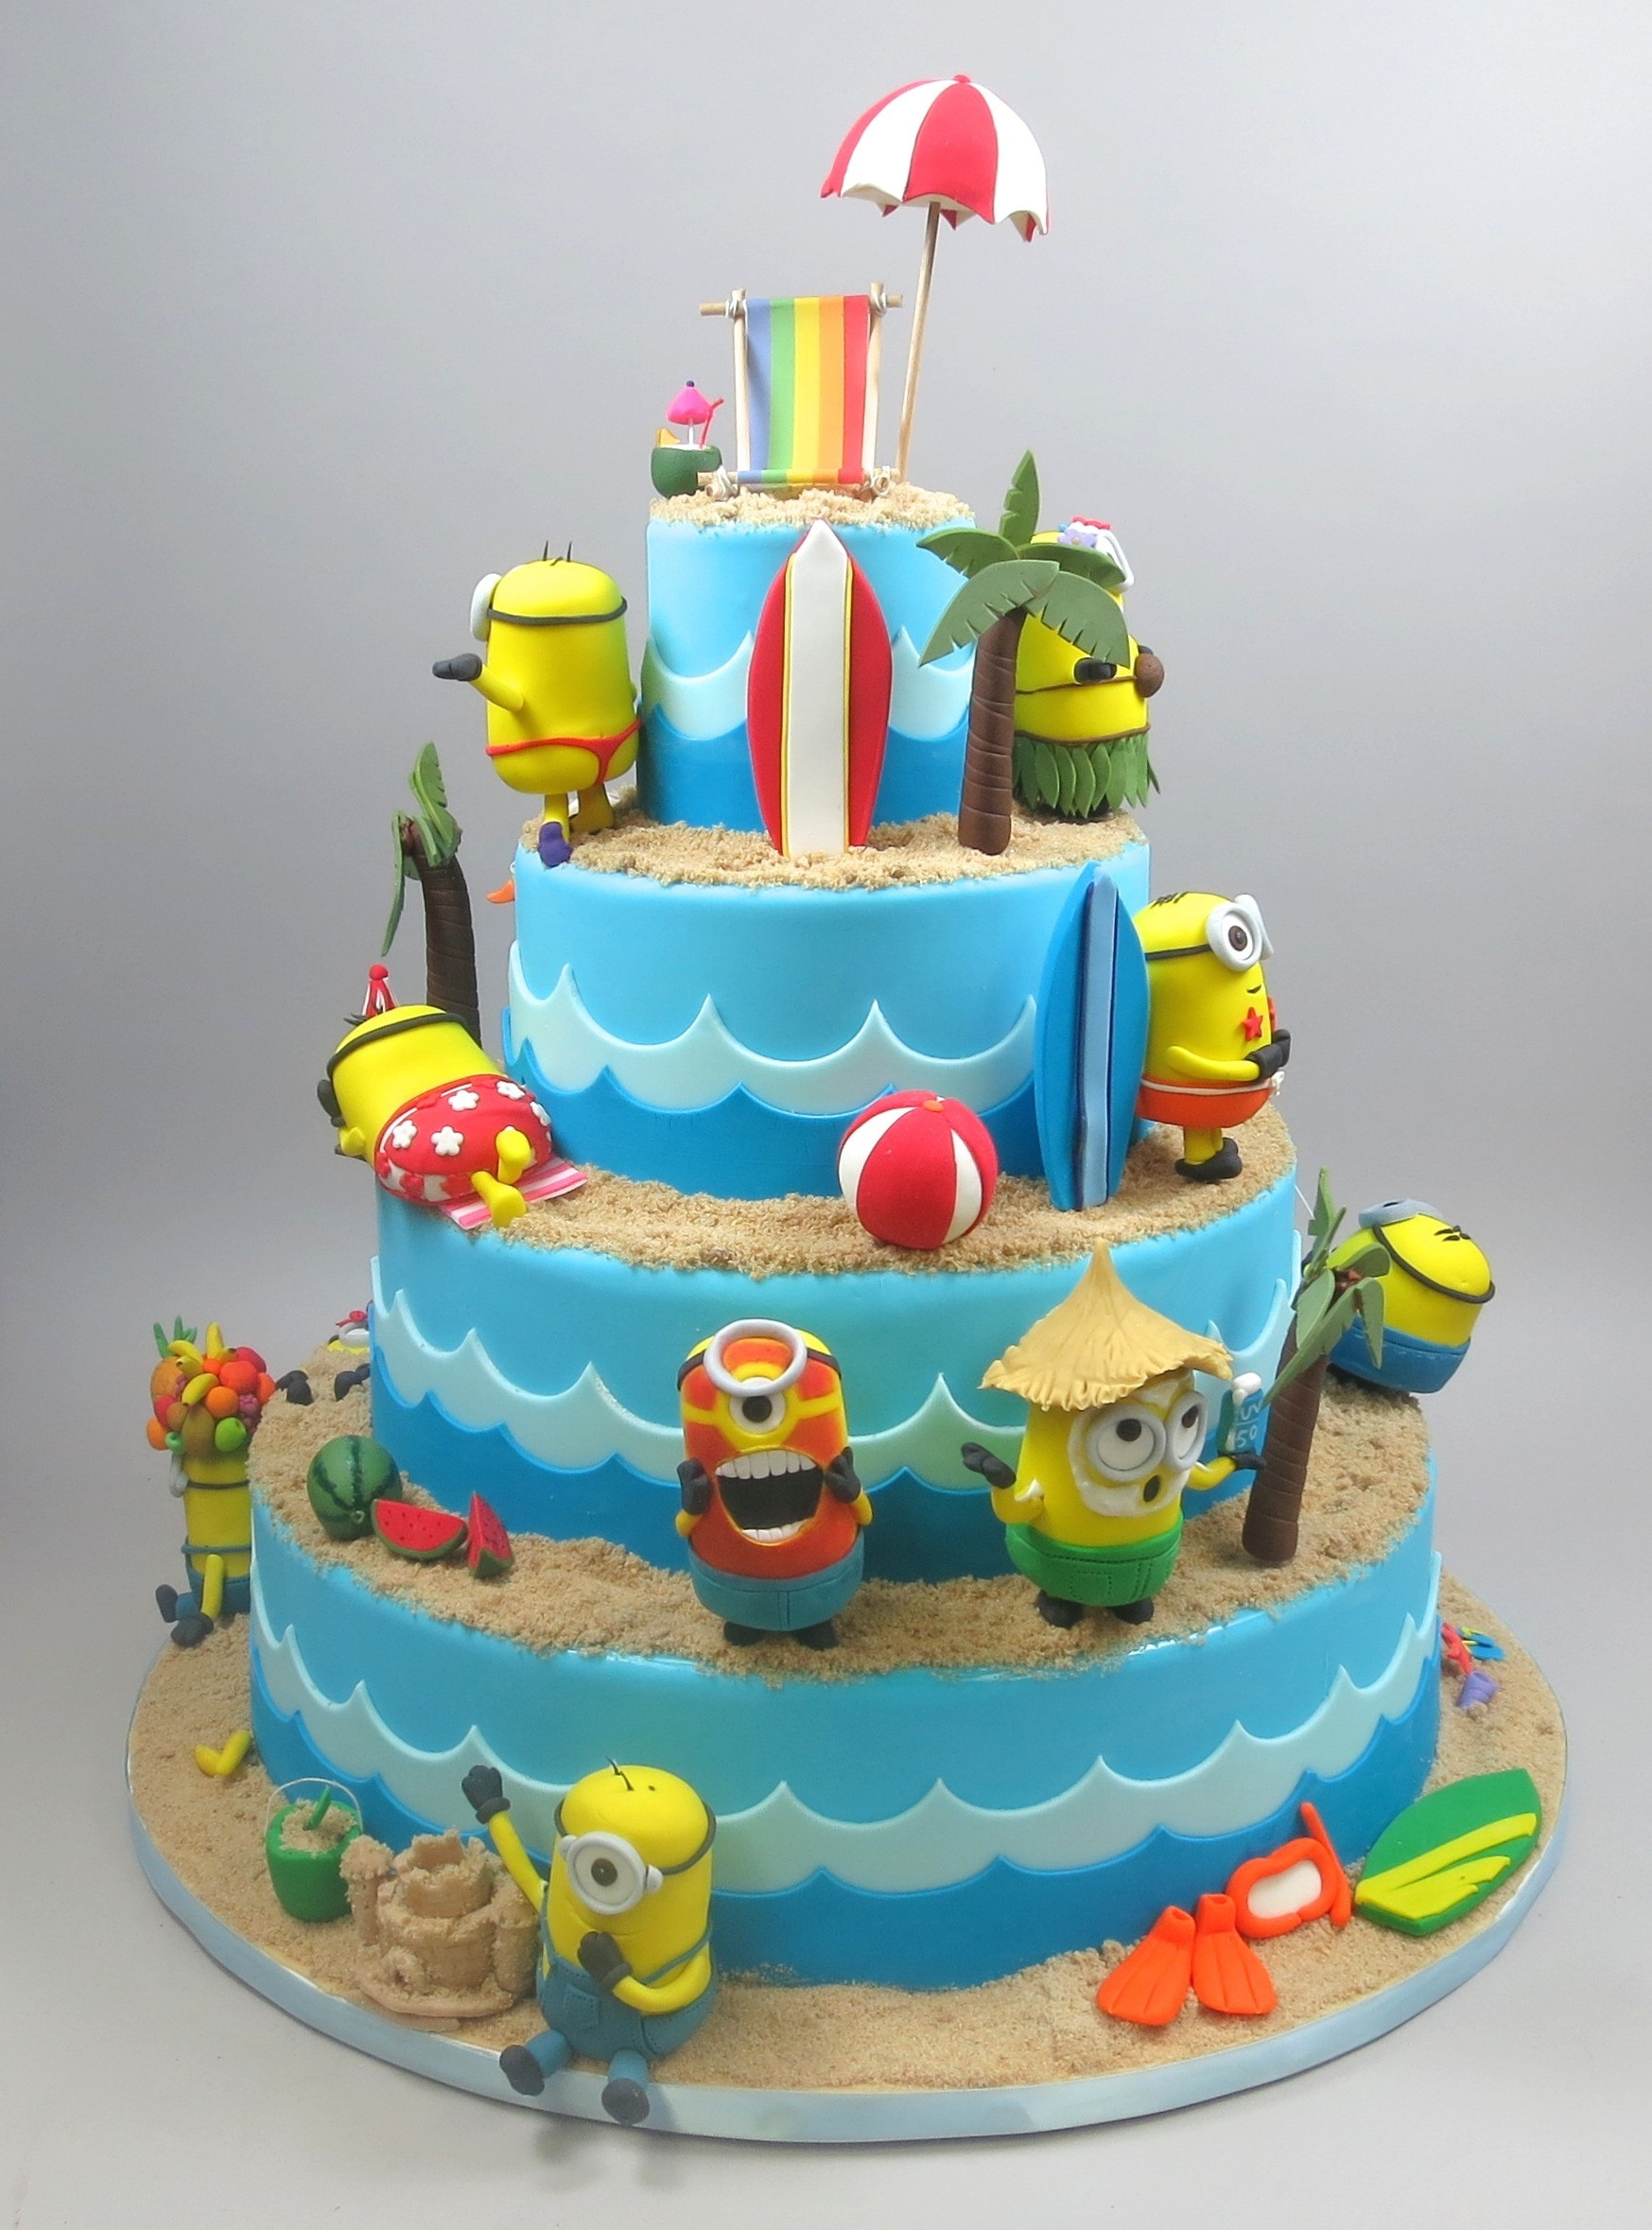 Best ideas about Kids Birthday Cake . Save or Pin Best Kids Birthday Cakes and Custom Cakes Worth Celebrating Now.